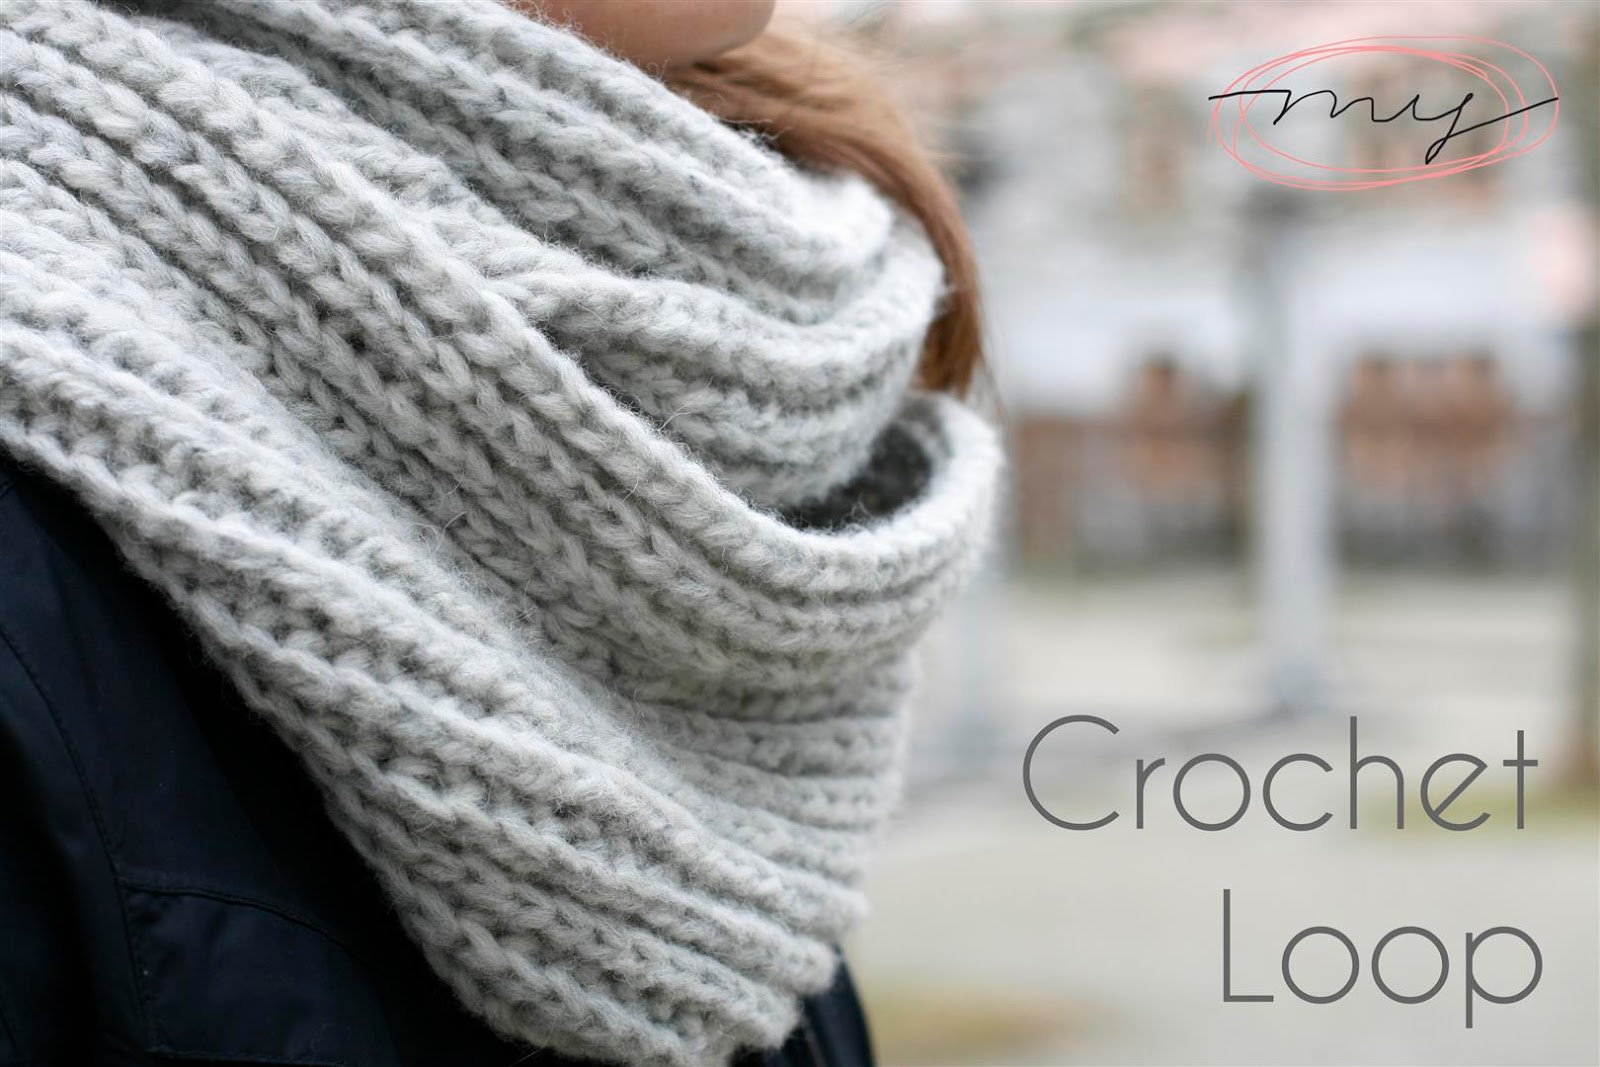 nein gehkelt easy loop schal simple infinity scarf crochet diy neu mit video tutorial - Schal Hakeln Muster